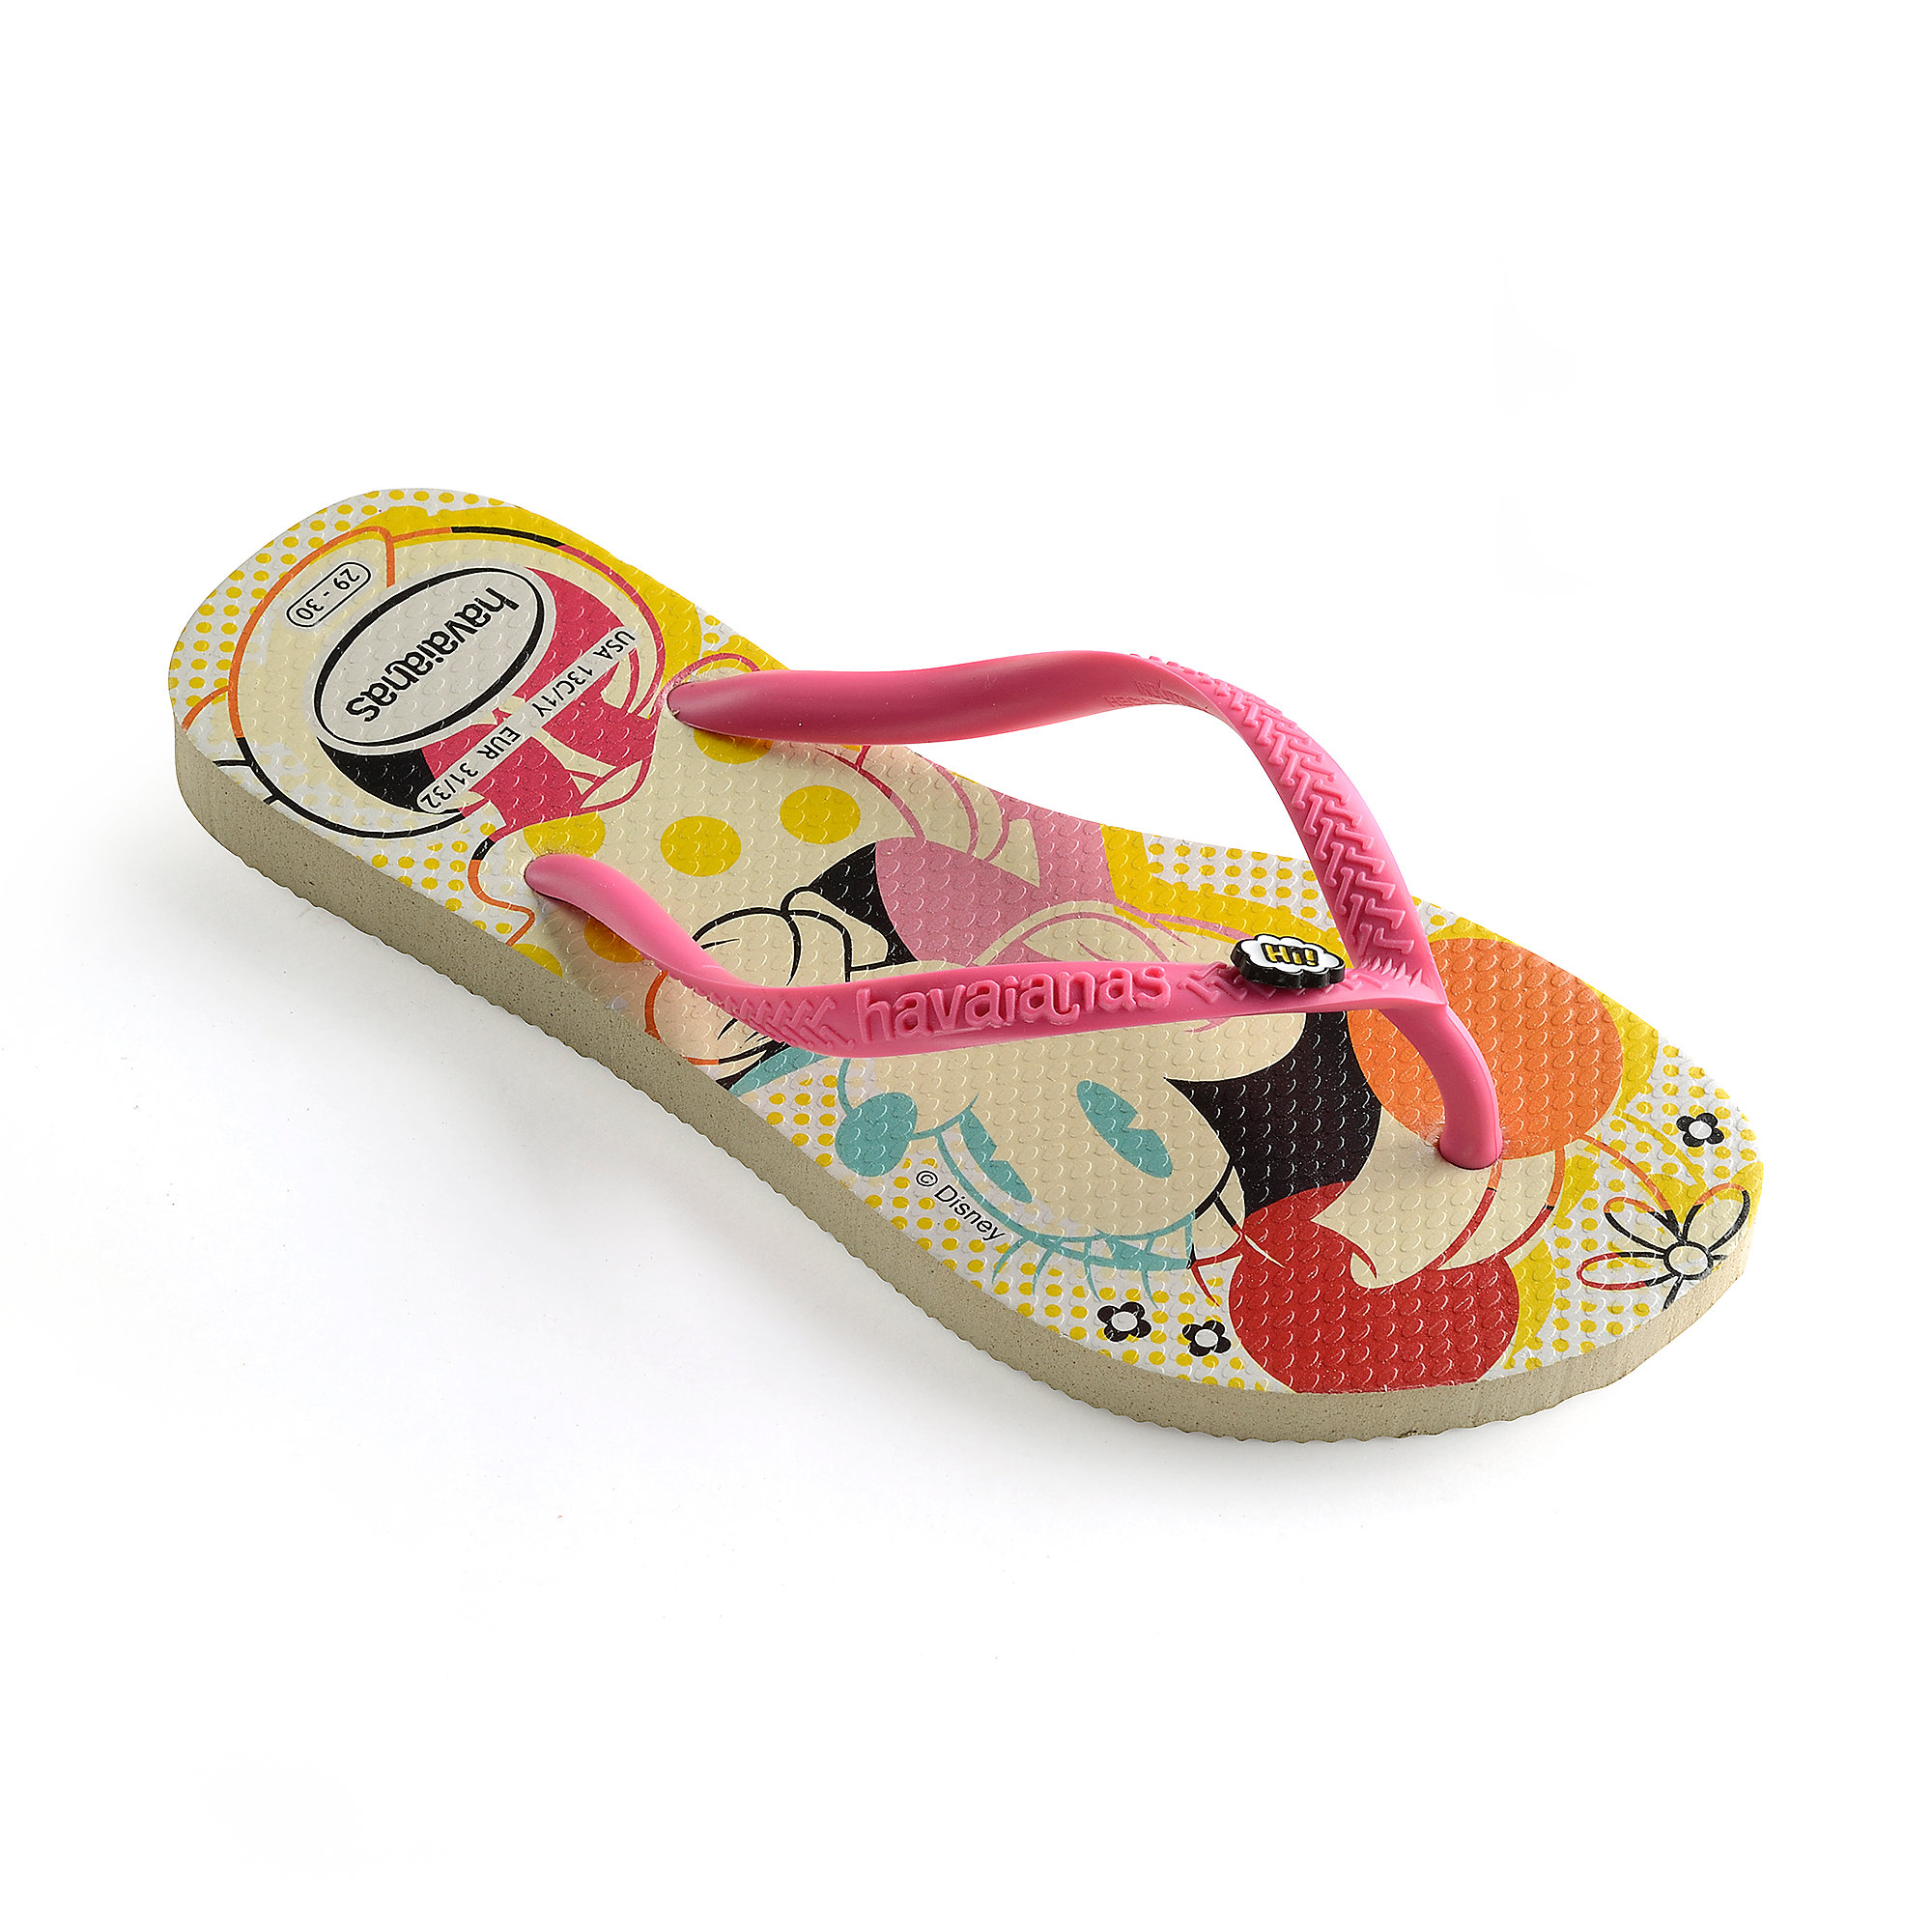 05259c977c9cd7 Minnie Mouse Flip Flops for Kids by Havaianas